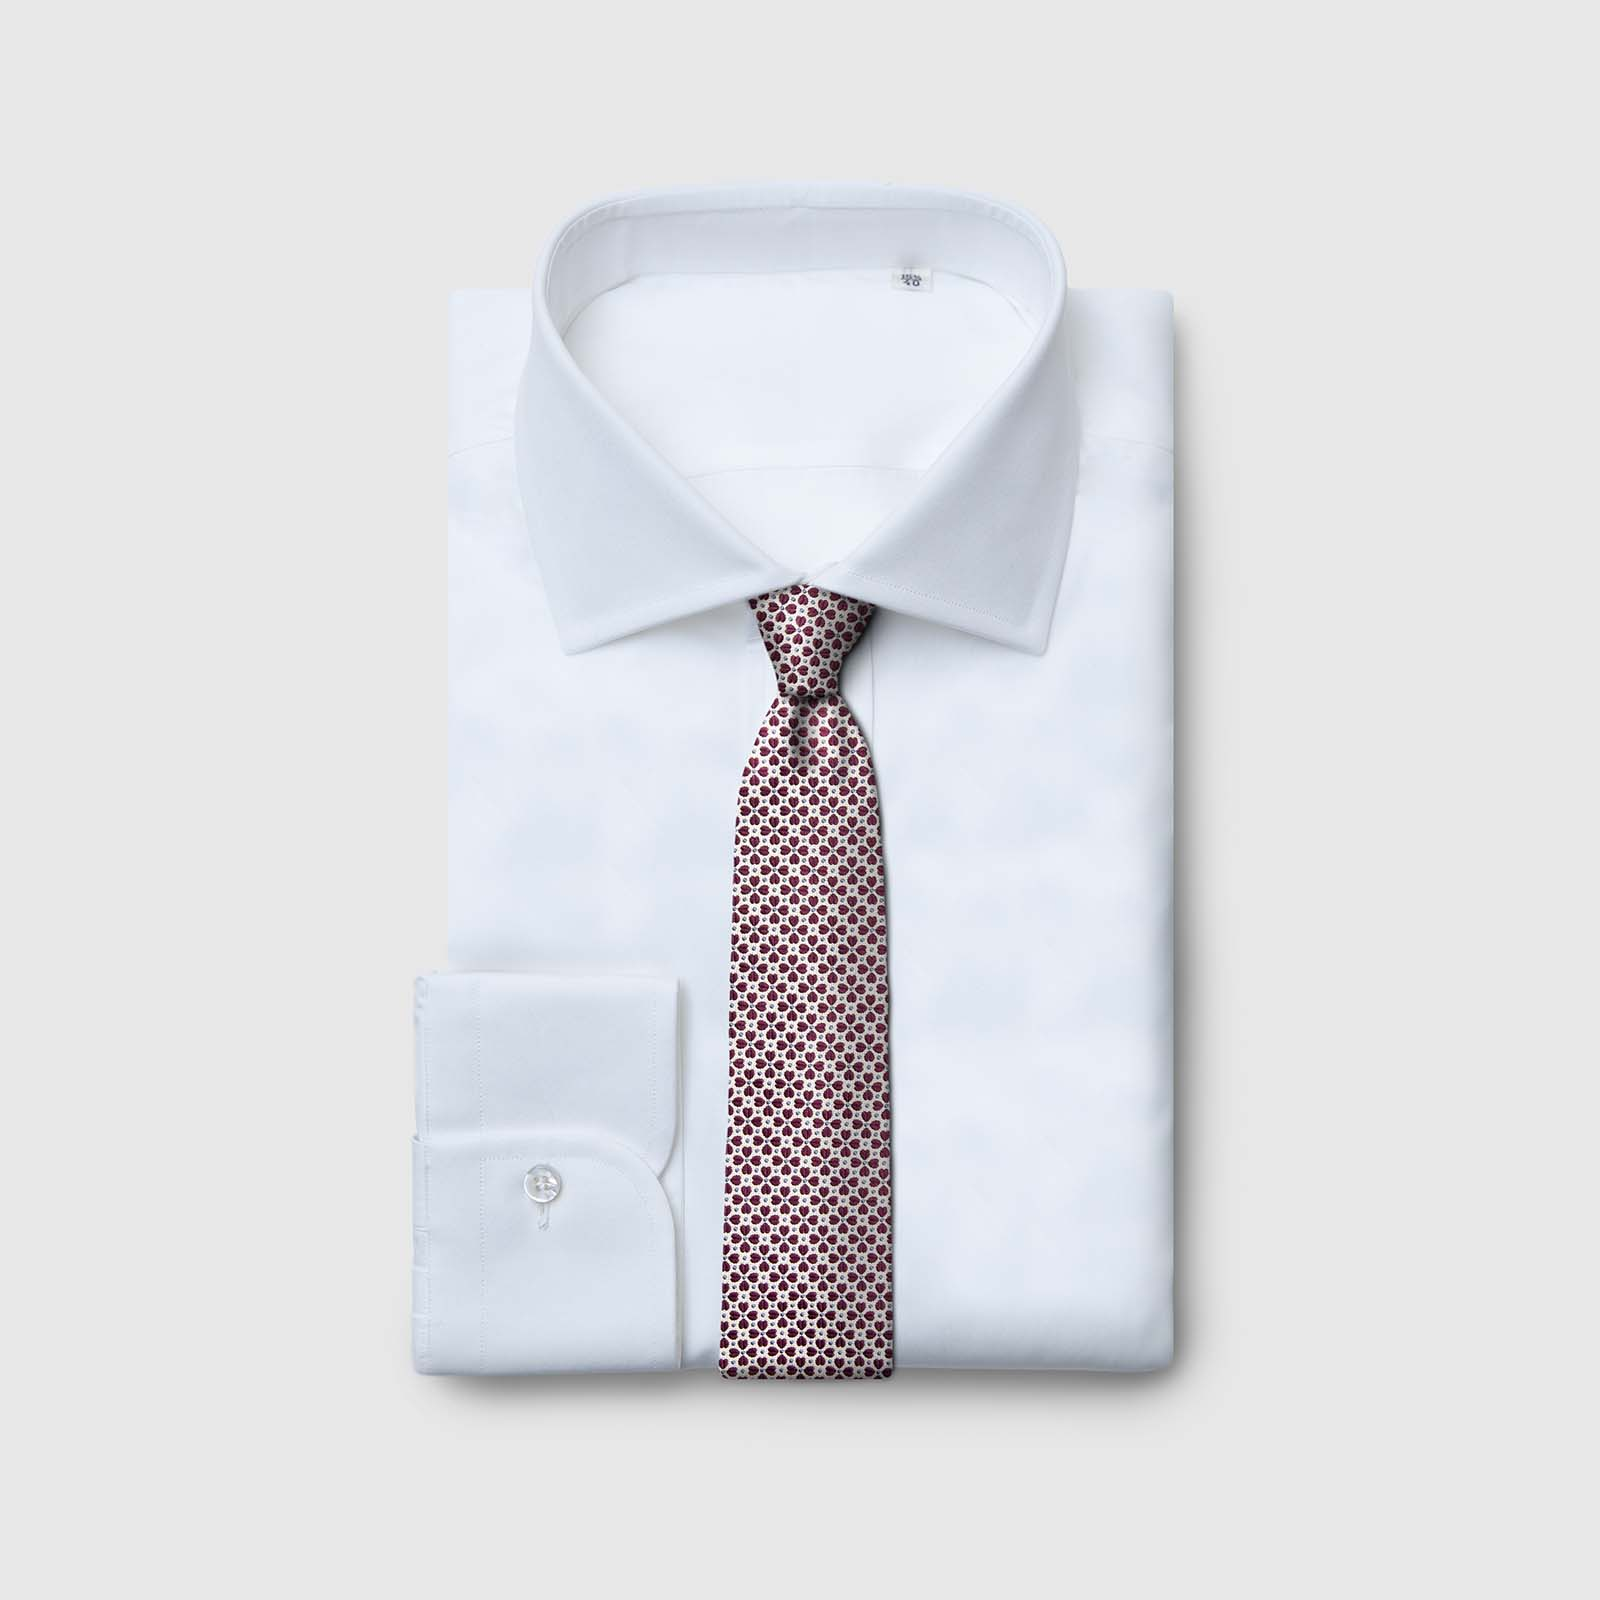 5 Fold white tie with red petals and blue dots